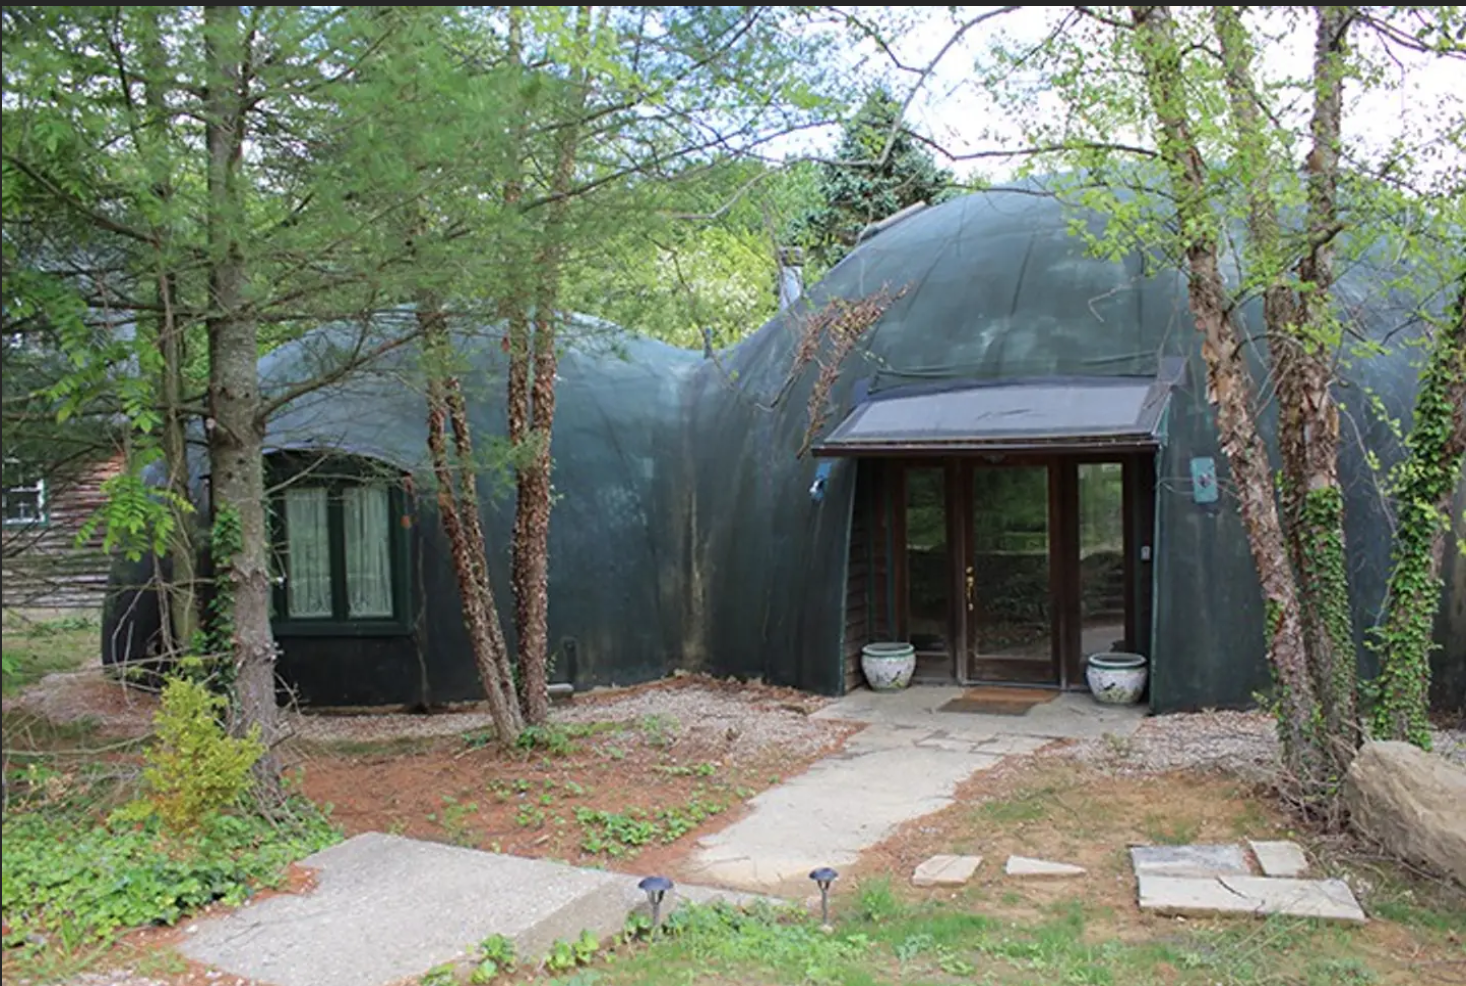 Earthstar dome sanctuary home accommodation